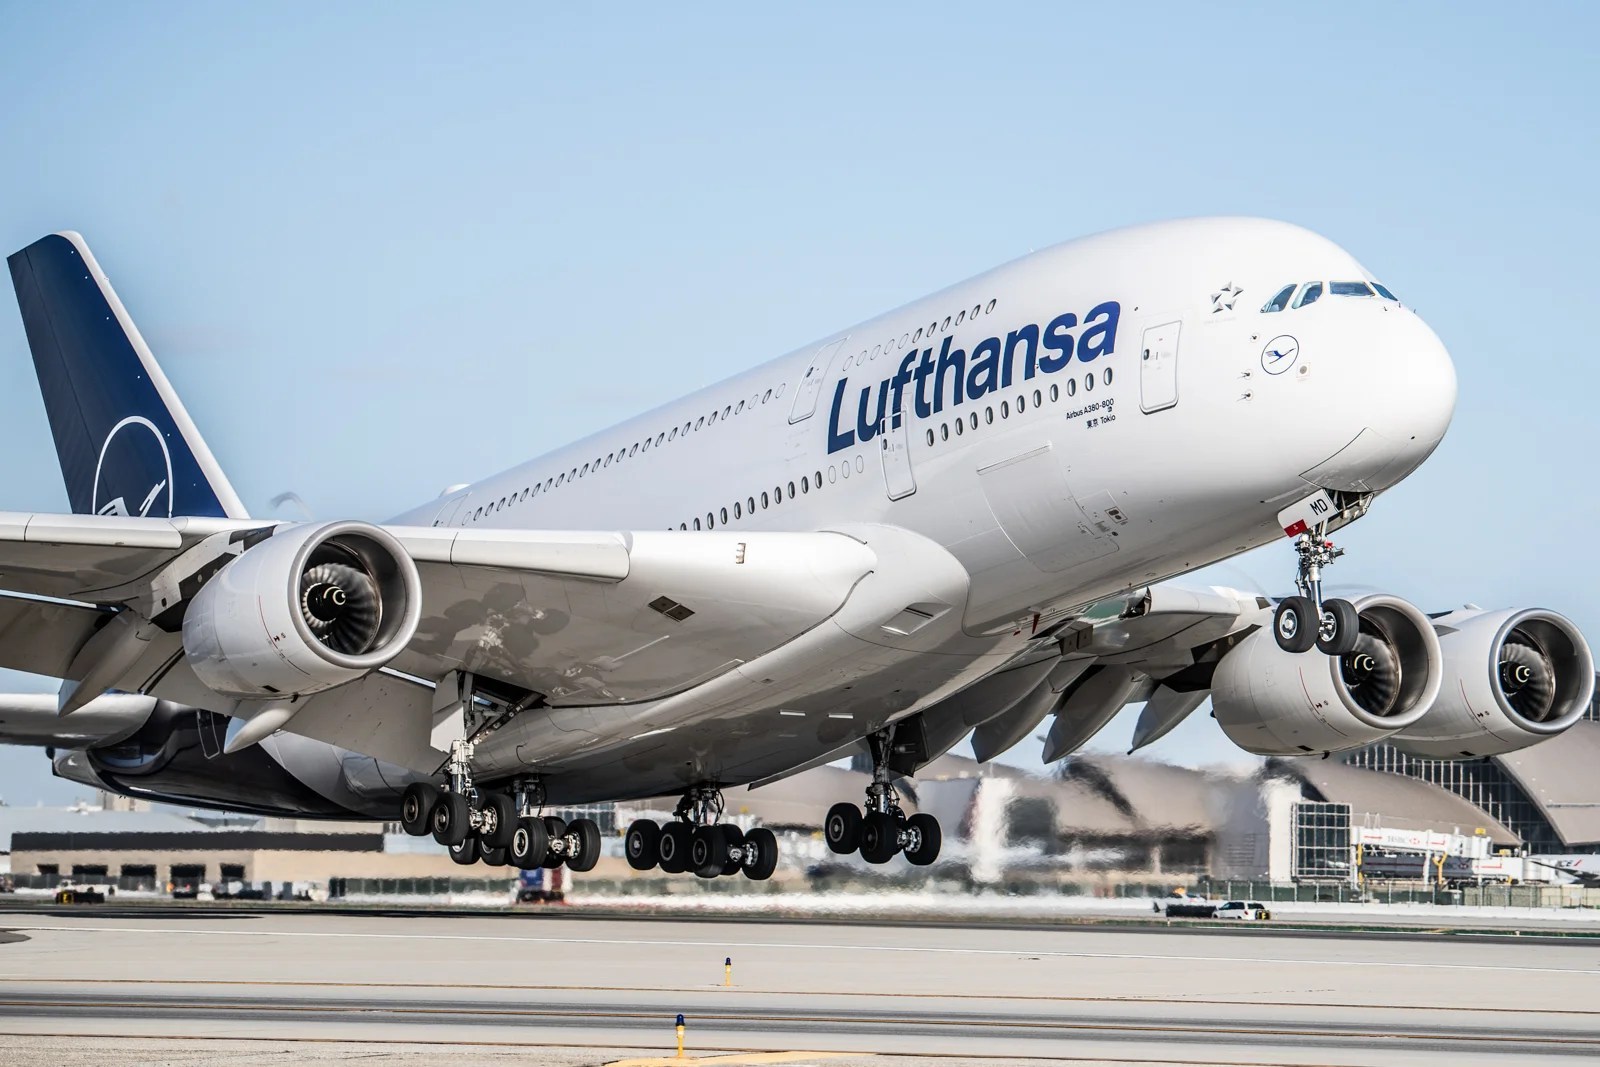 Lufthansa is upcycling a plane and you can own part of it